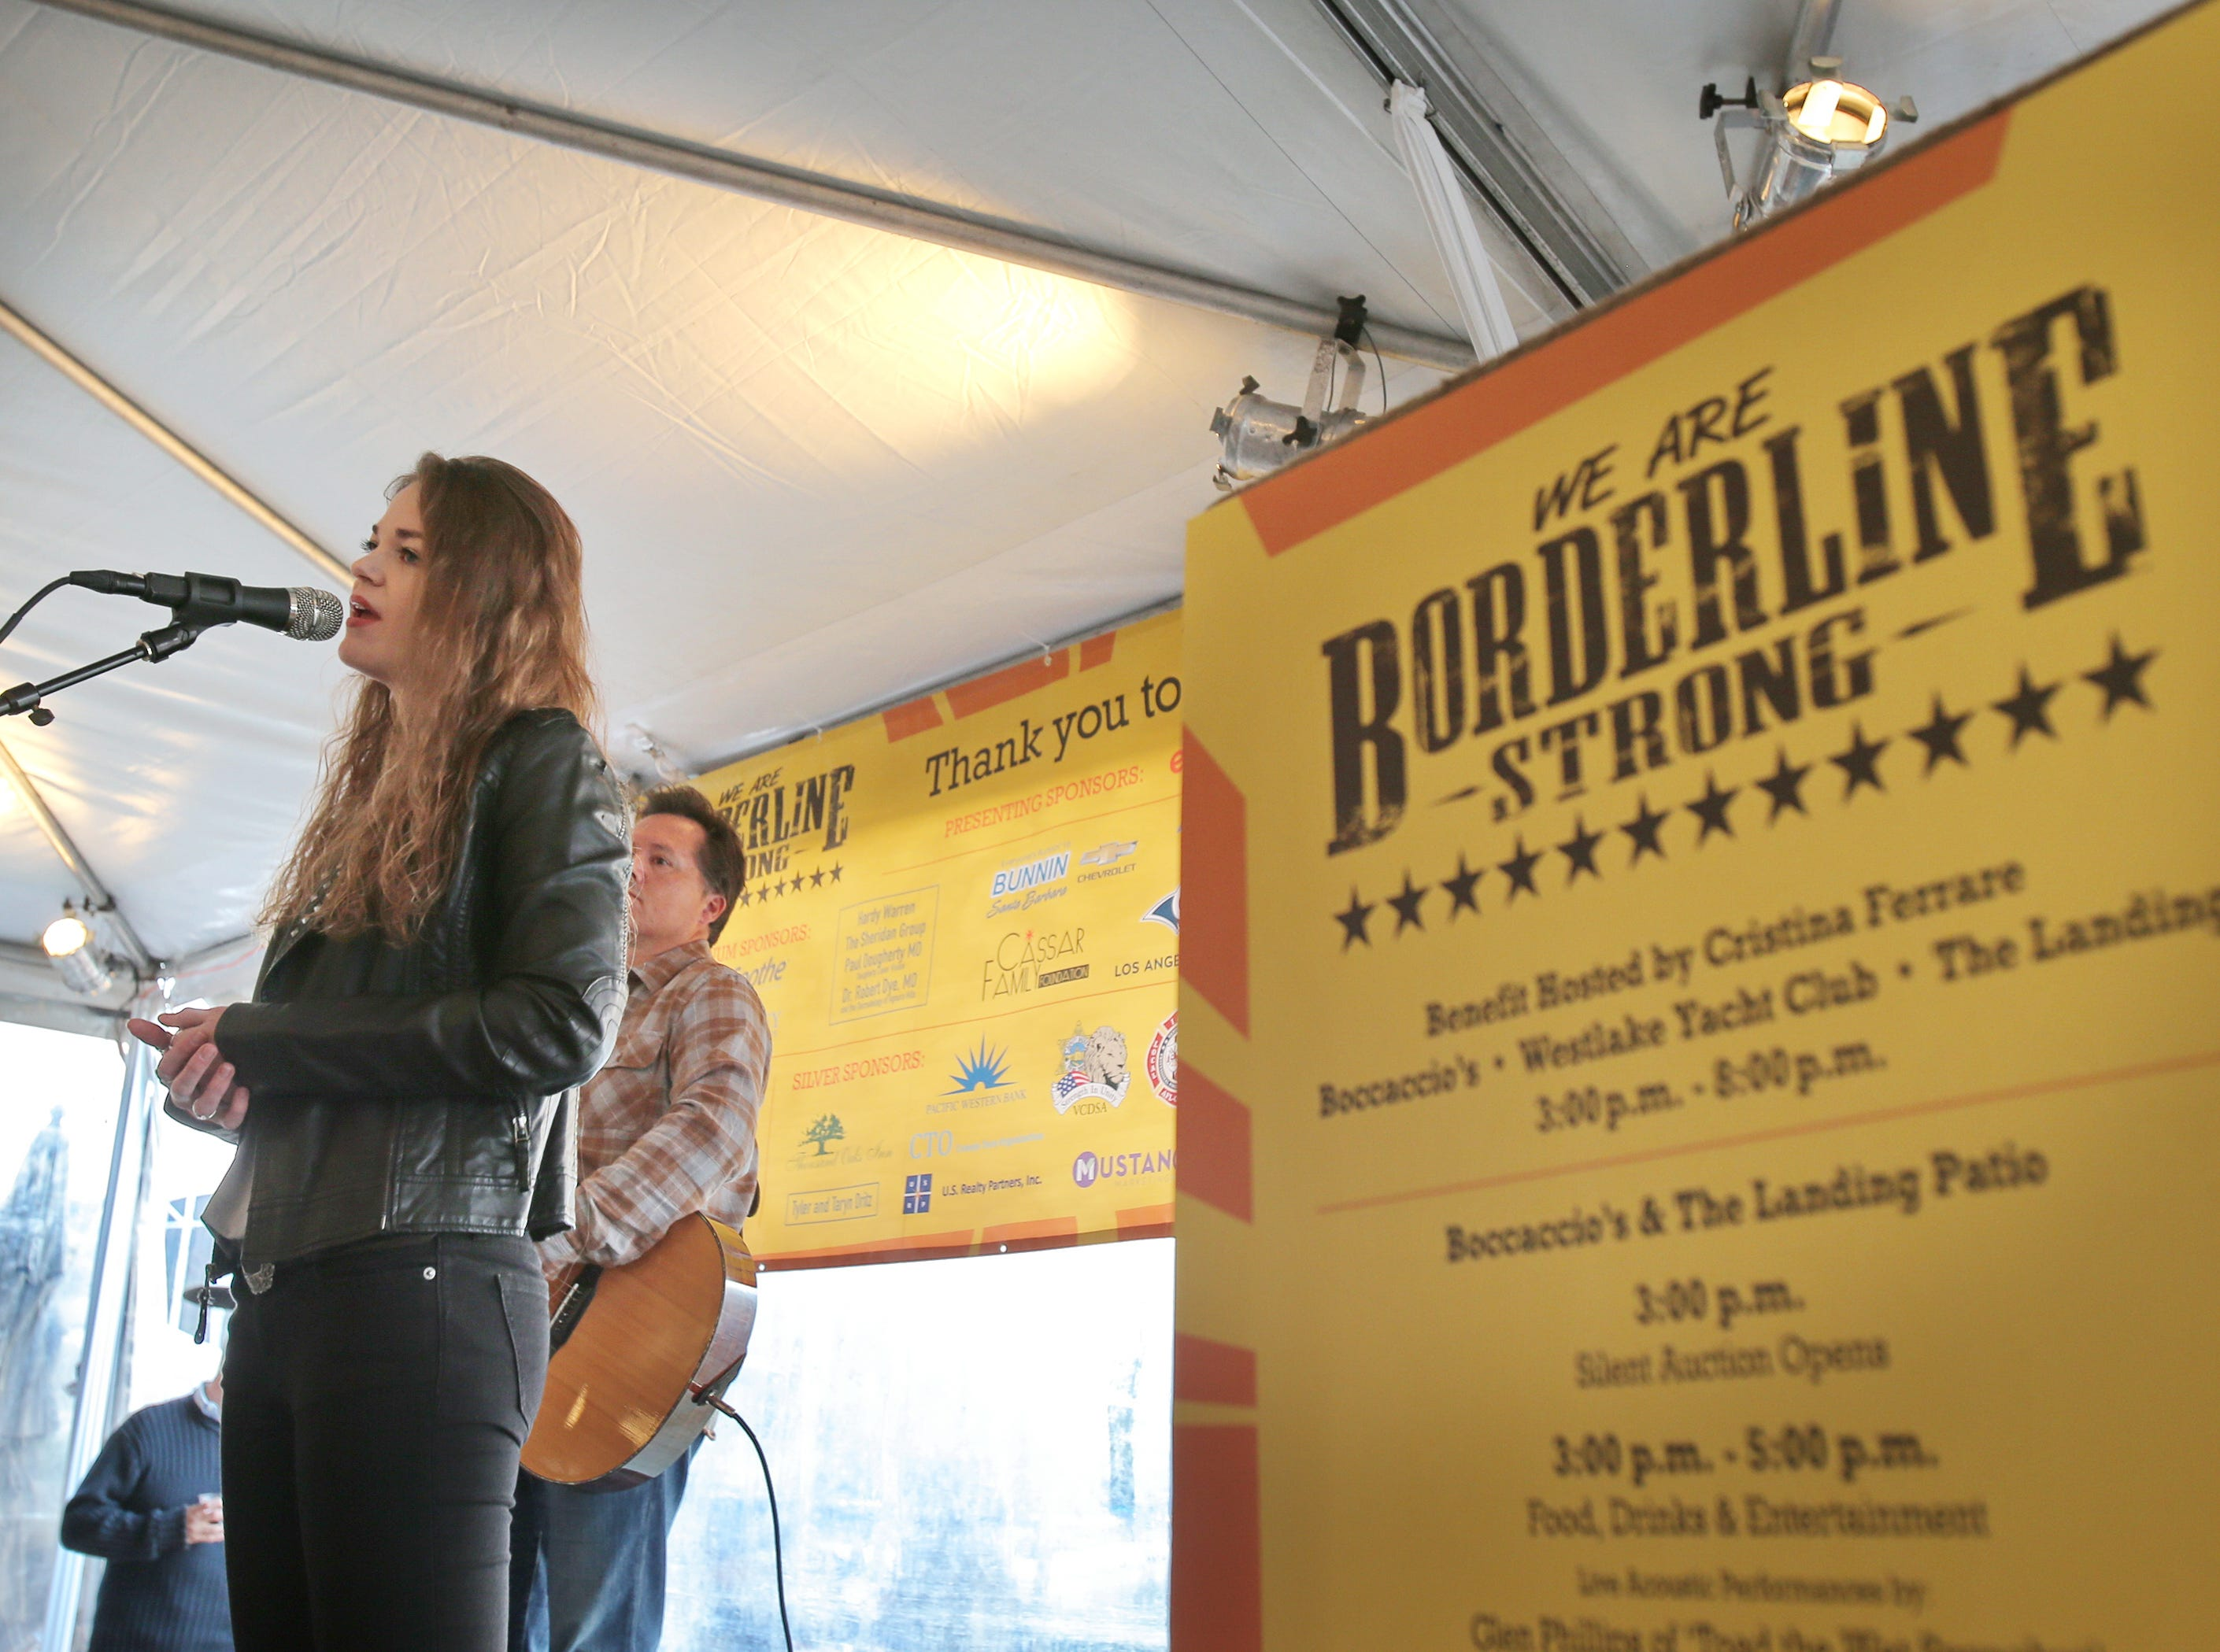 """Local artist Paige Peel, of Moorpark, accompanied by Joel Jacks, performs her song """"Our Home"""" during Sunday's We Are Borderline Strong benefit at Boccaccio's Restaurant, The Westlake Yacht Club and The Landing in Westlake Village. Peel wrote the song for her two brothers who lost friends at the Borderline shooting."""